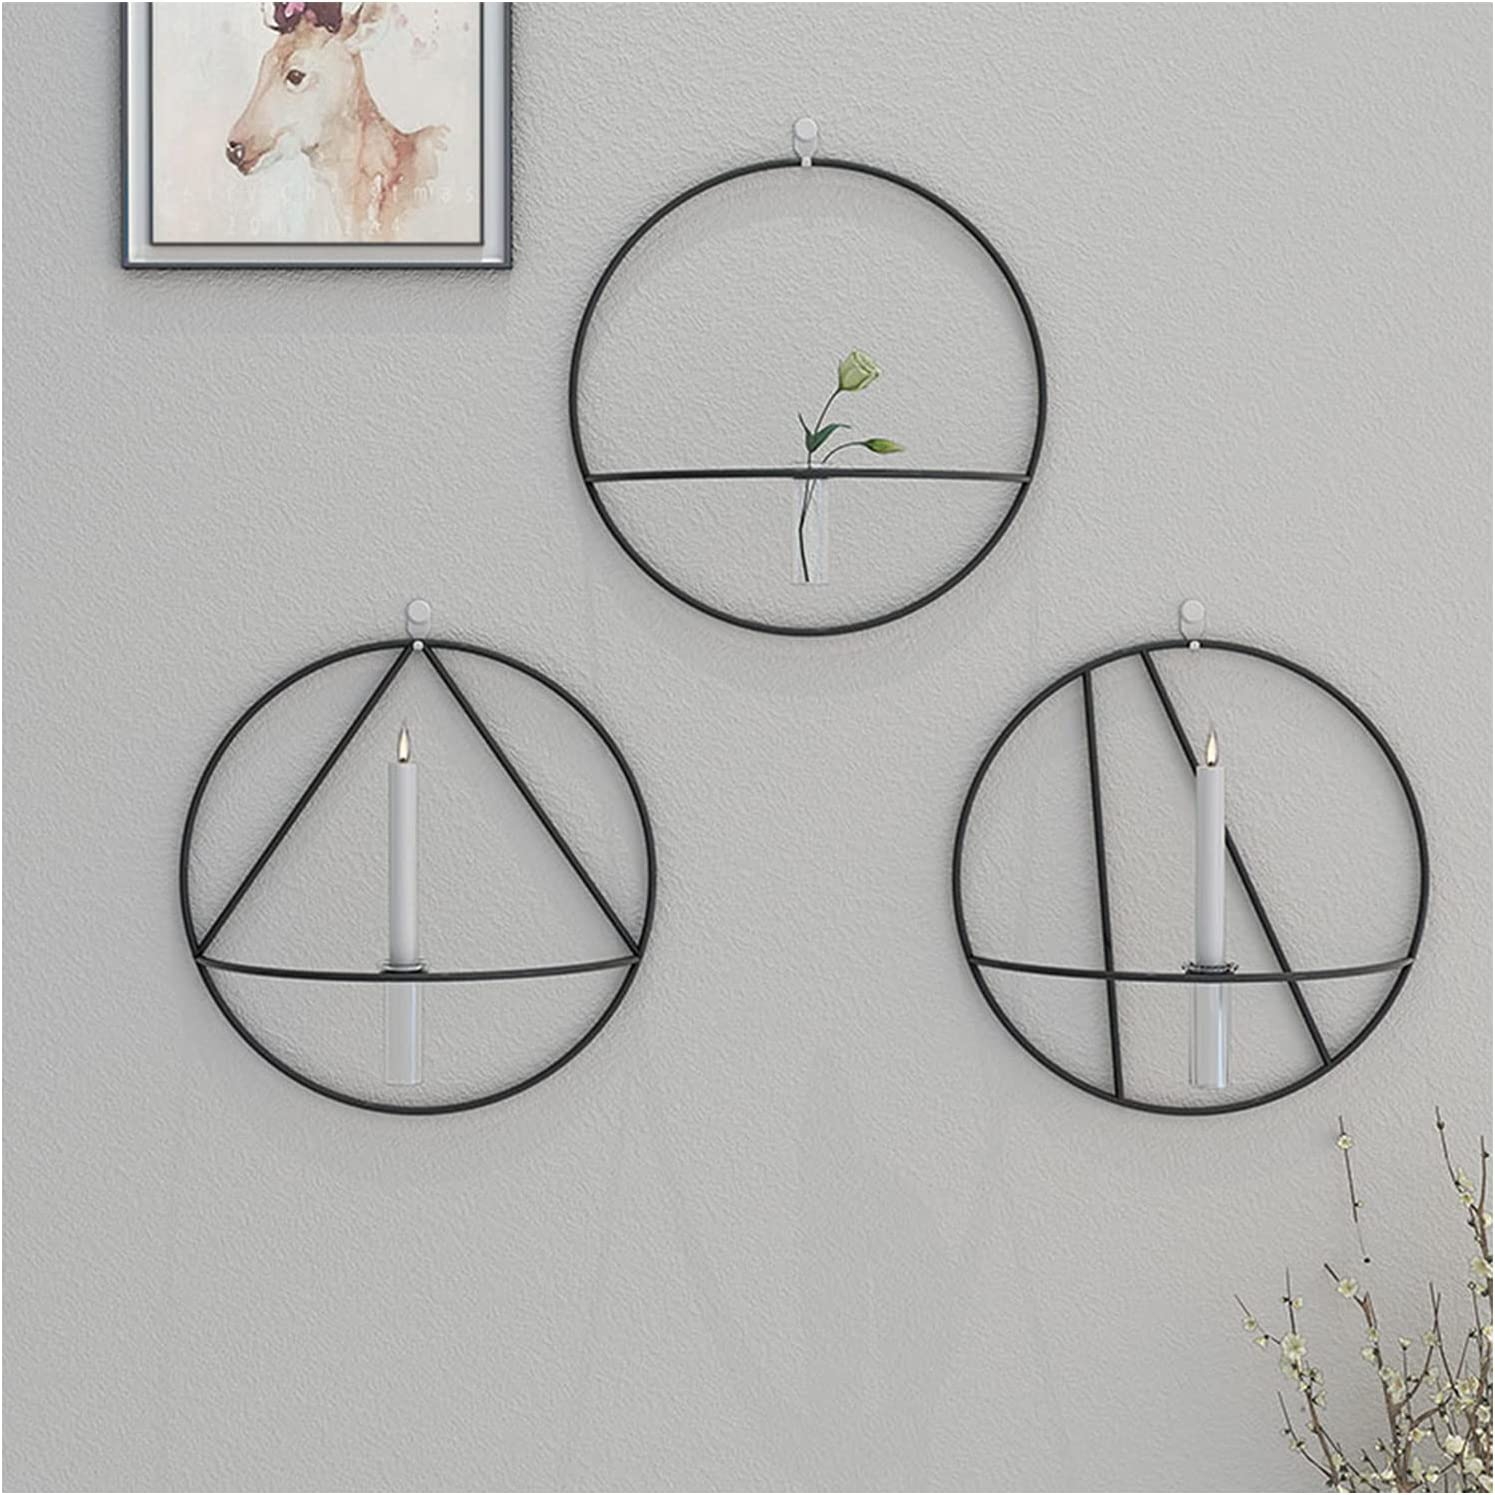 3PCS Max 89% OFF Nordic Style 3D Metal Geometric Hanging Candle Wall Sacramento Mall Holder